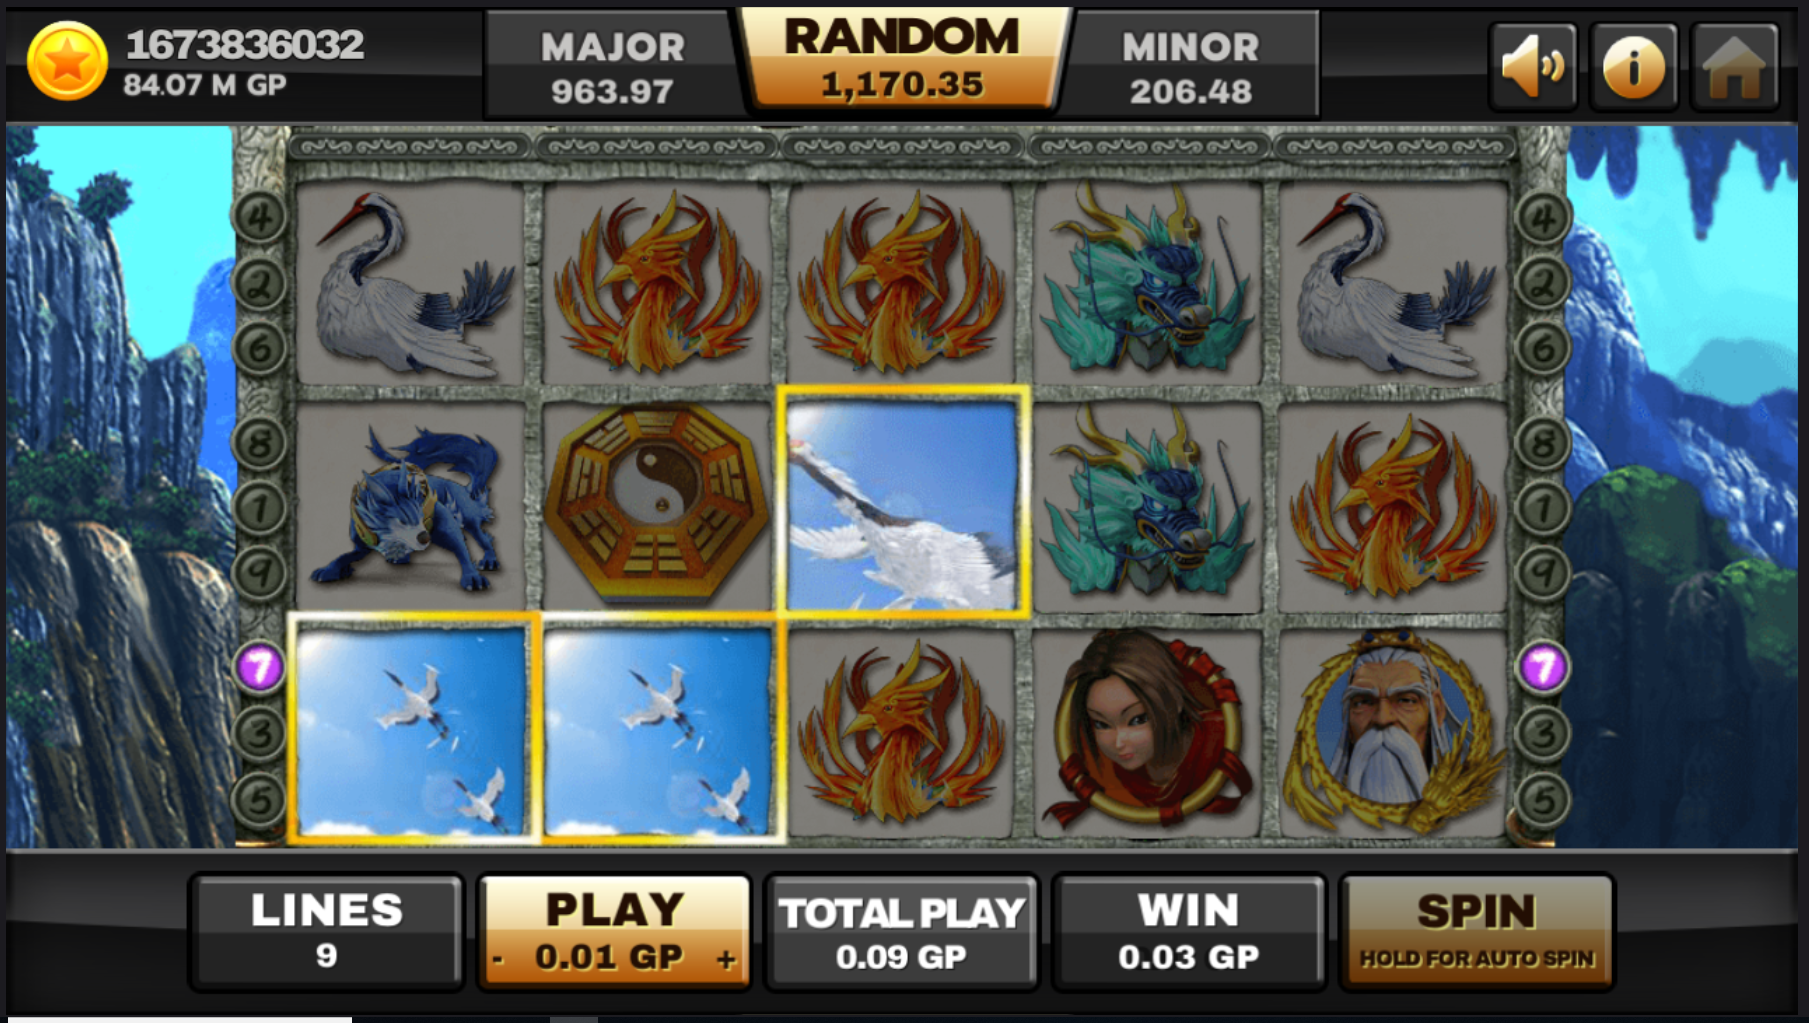 Play slots online for real money